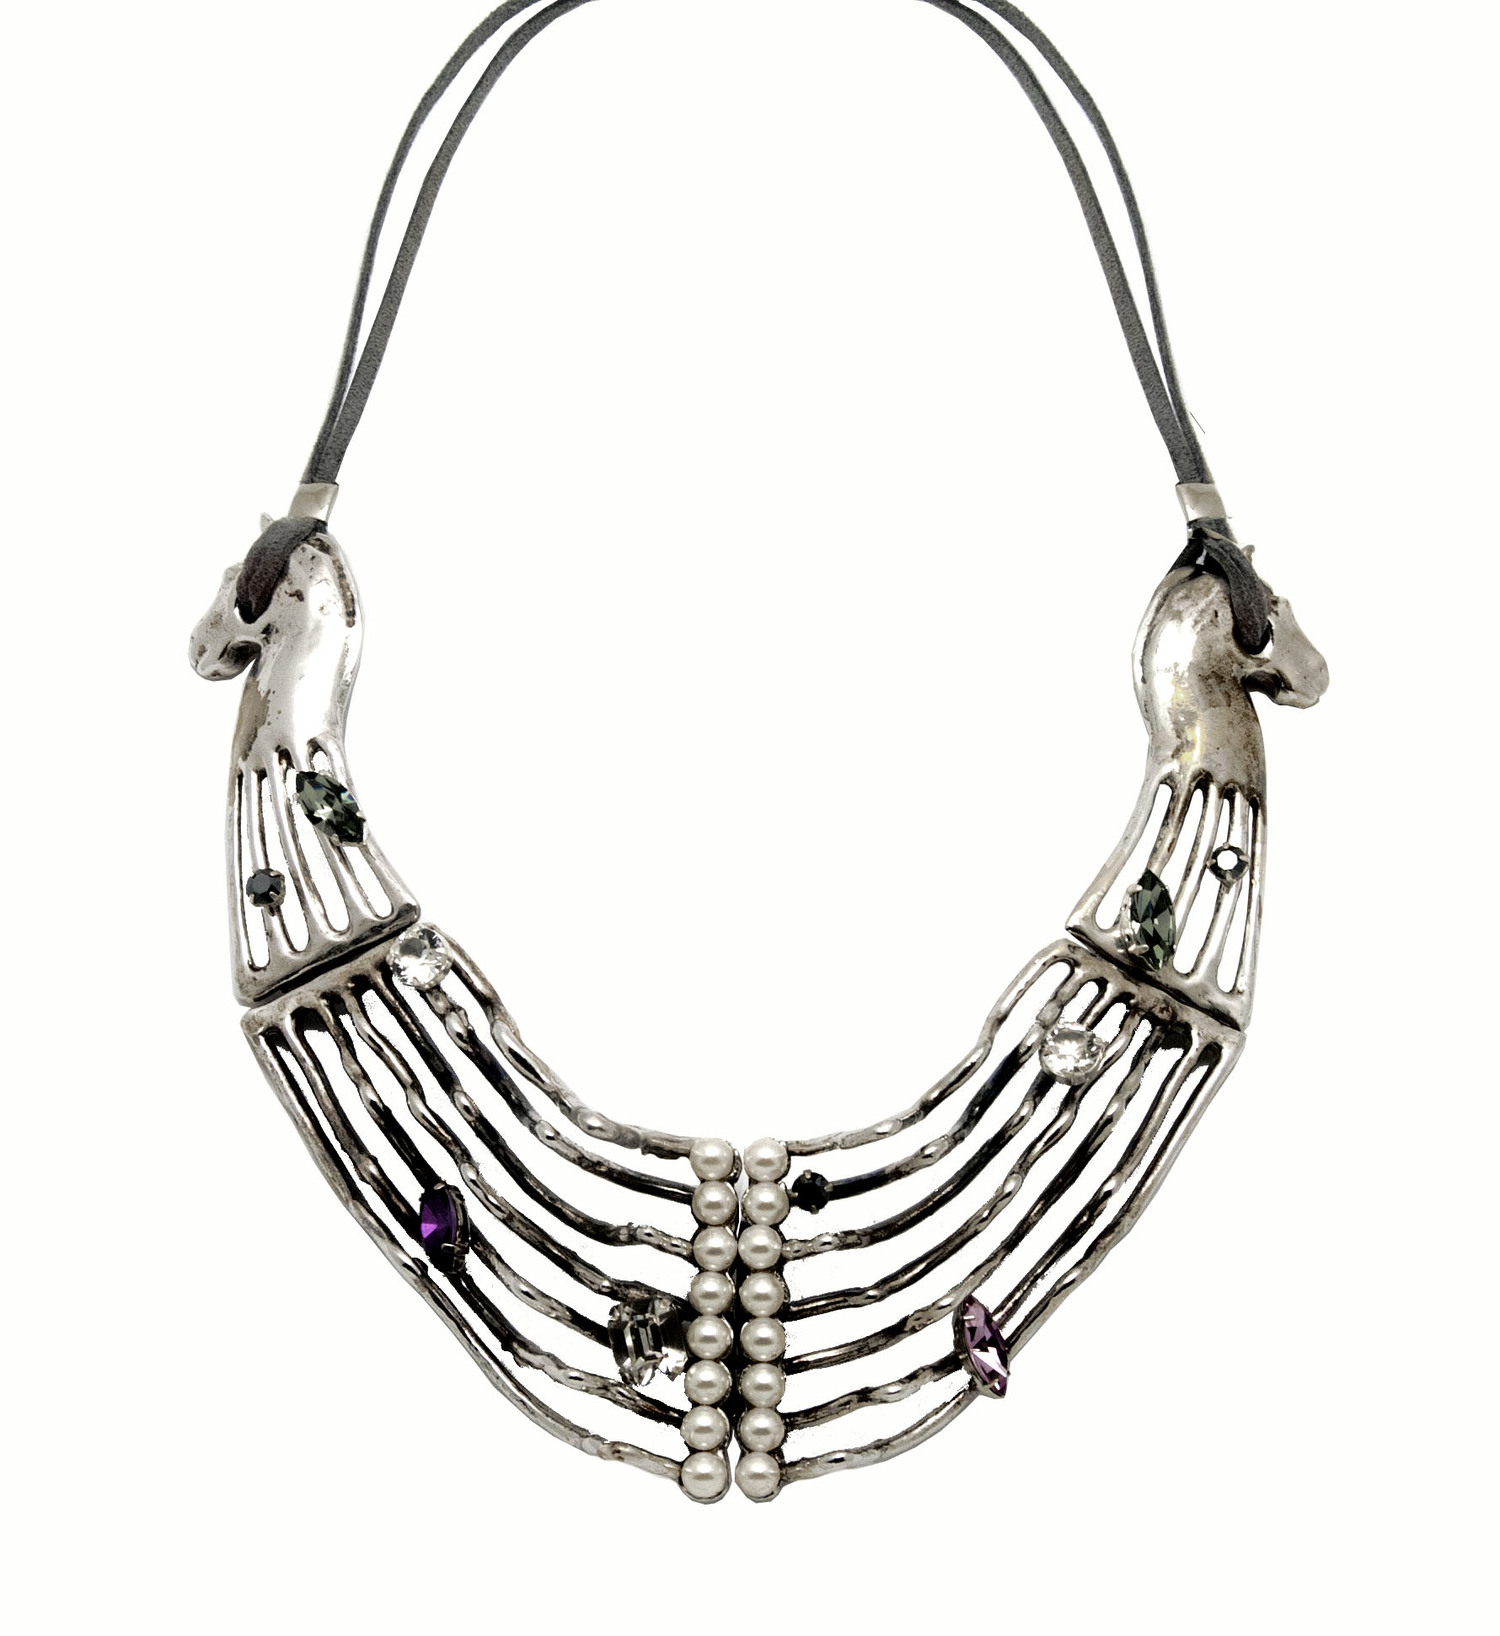 tectonic_necklace_silver_hires.jpg